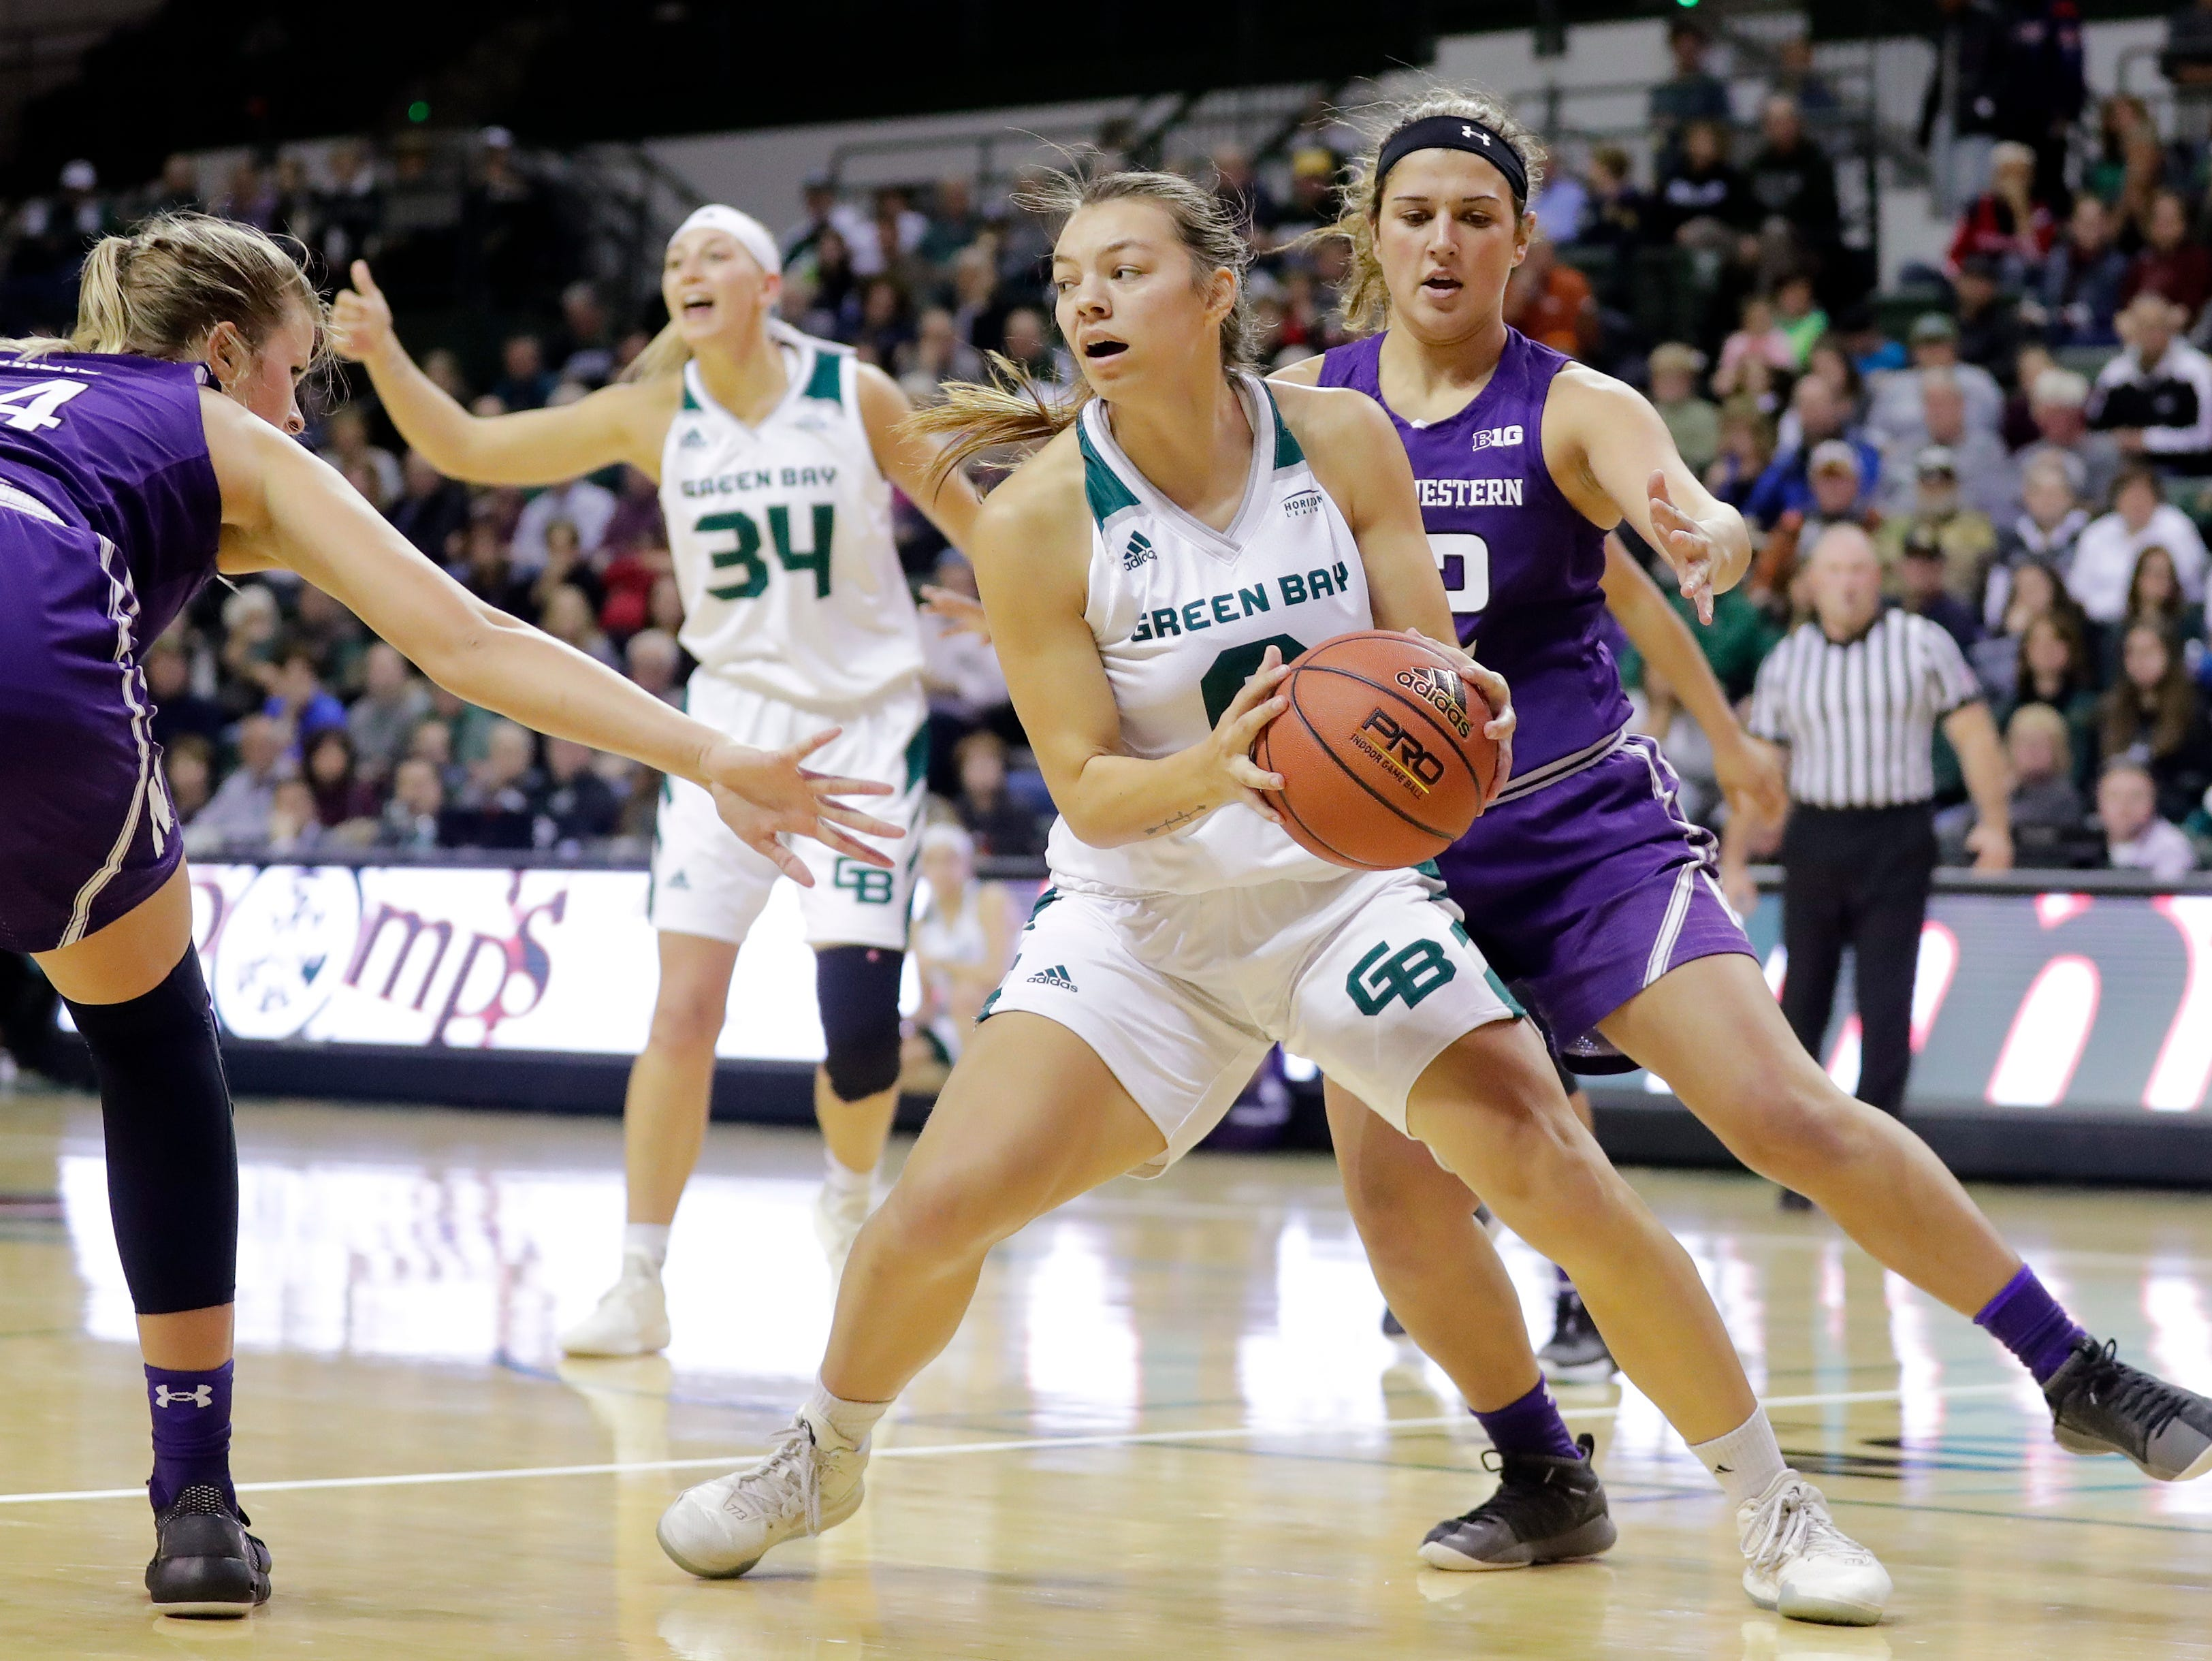 Green Bay Phoenix guard Hailey Oskey (0) passes against the Northwestern Wildcats in a women's NCAA basketball game at the Kress Center on Tuesday, November 6, 2018 in Green Bay, Wis.